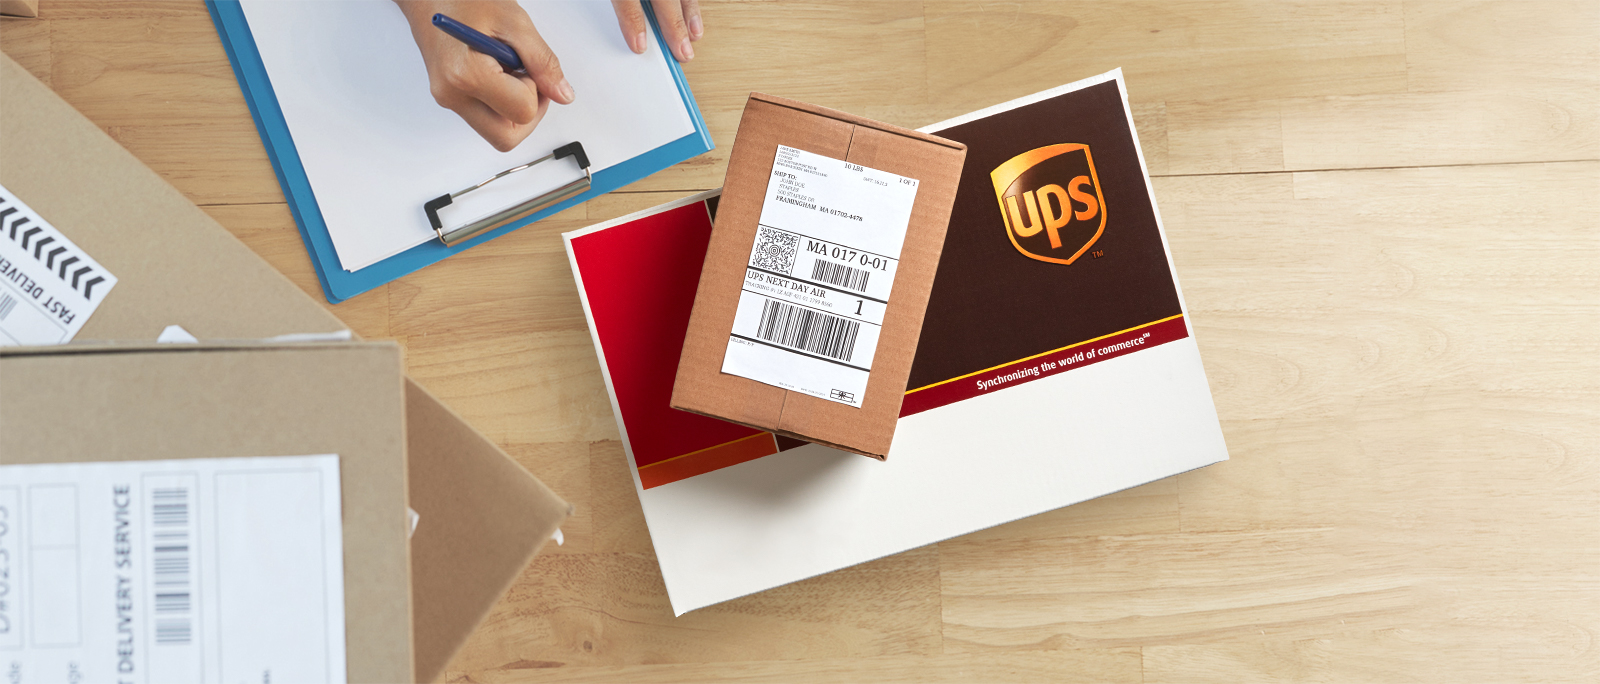 20% off UPS expedited shipping services